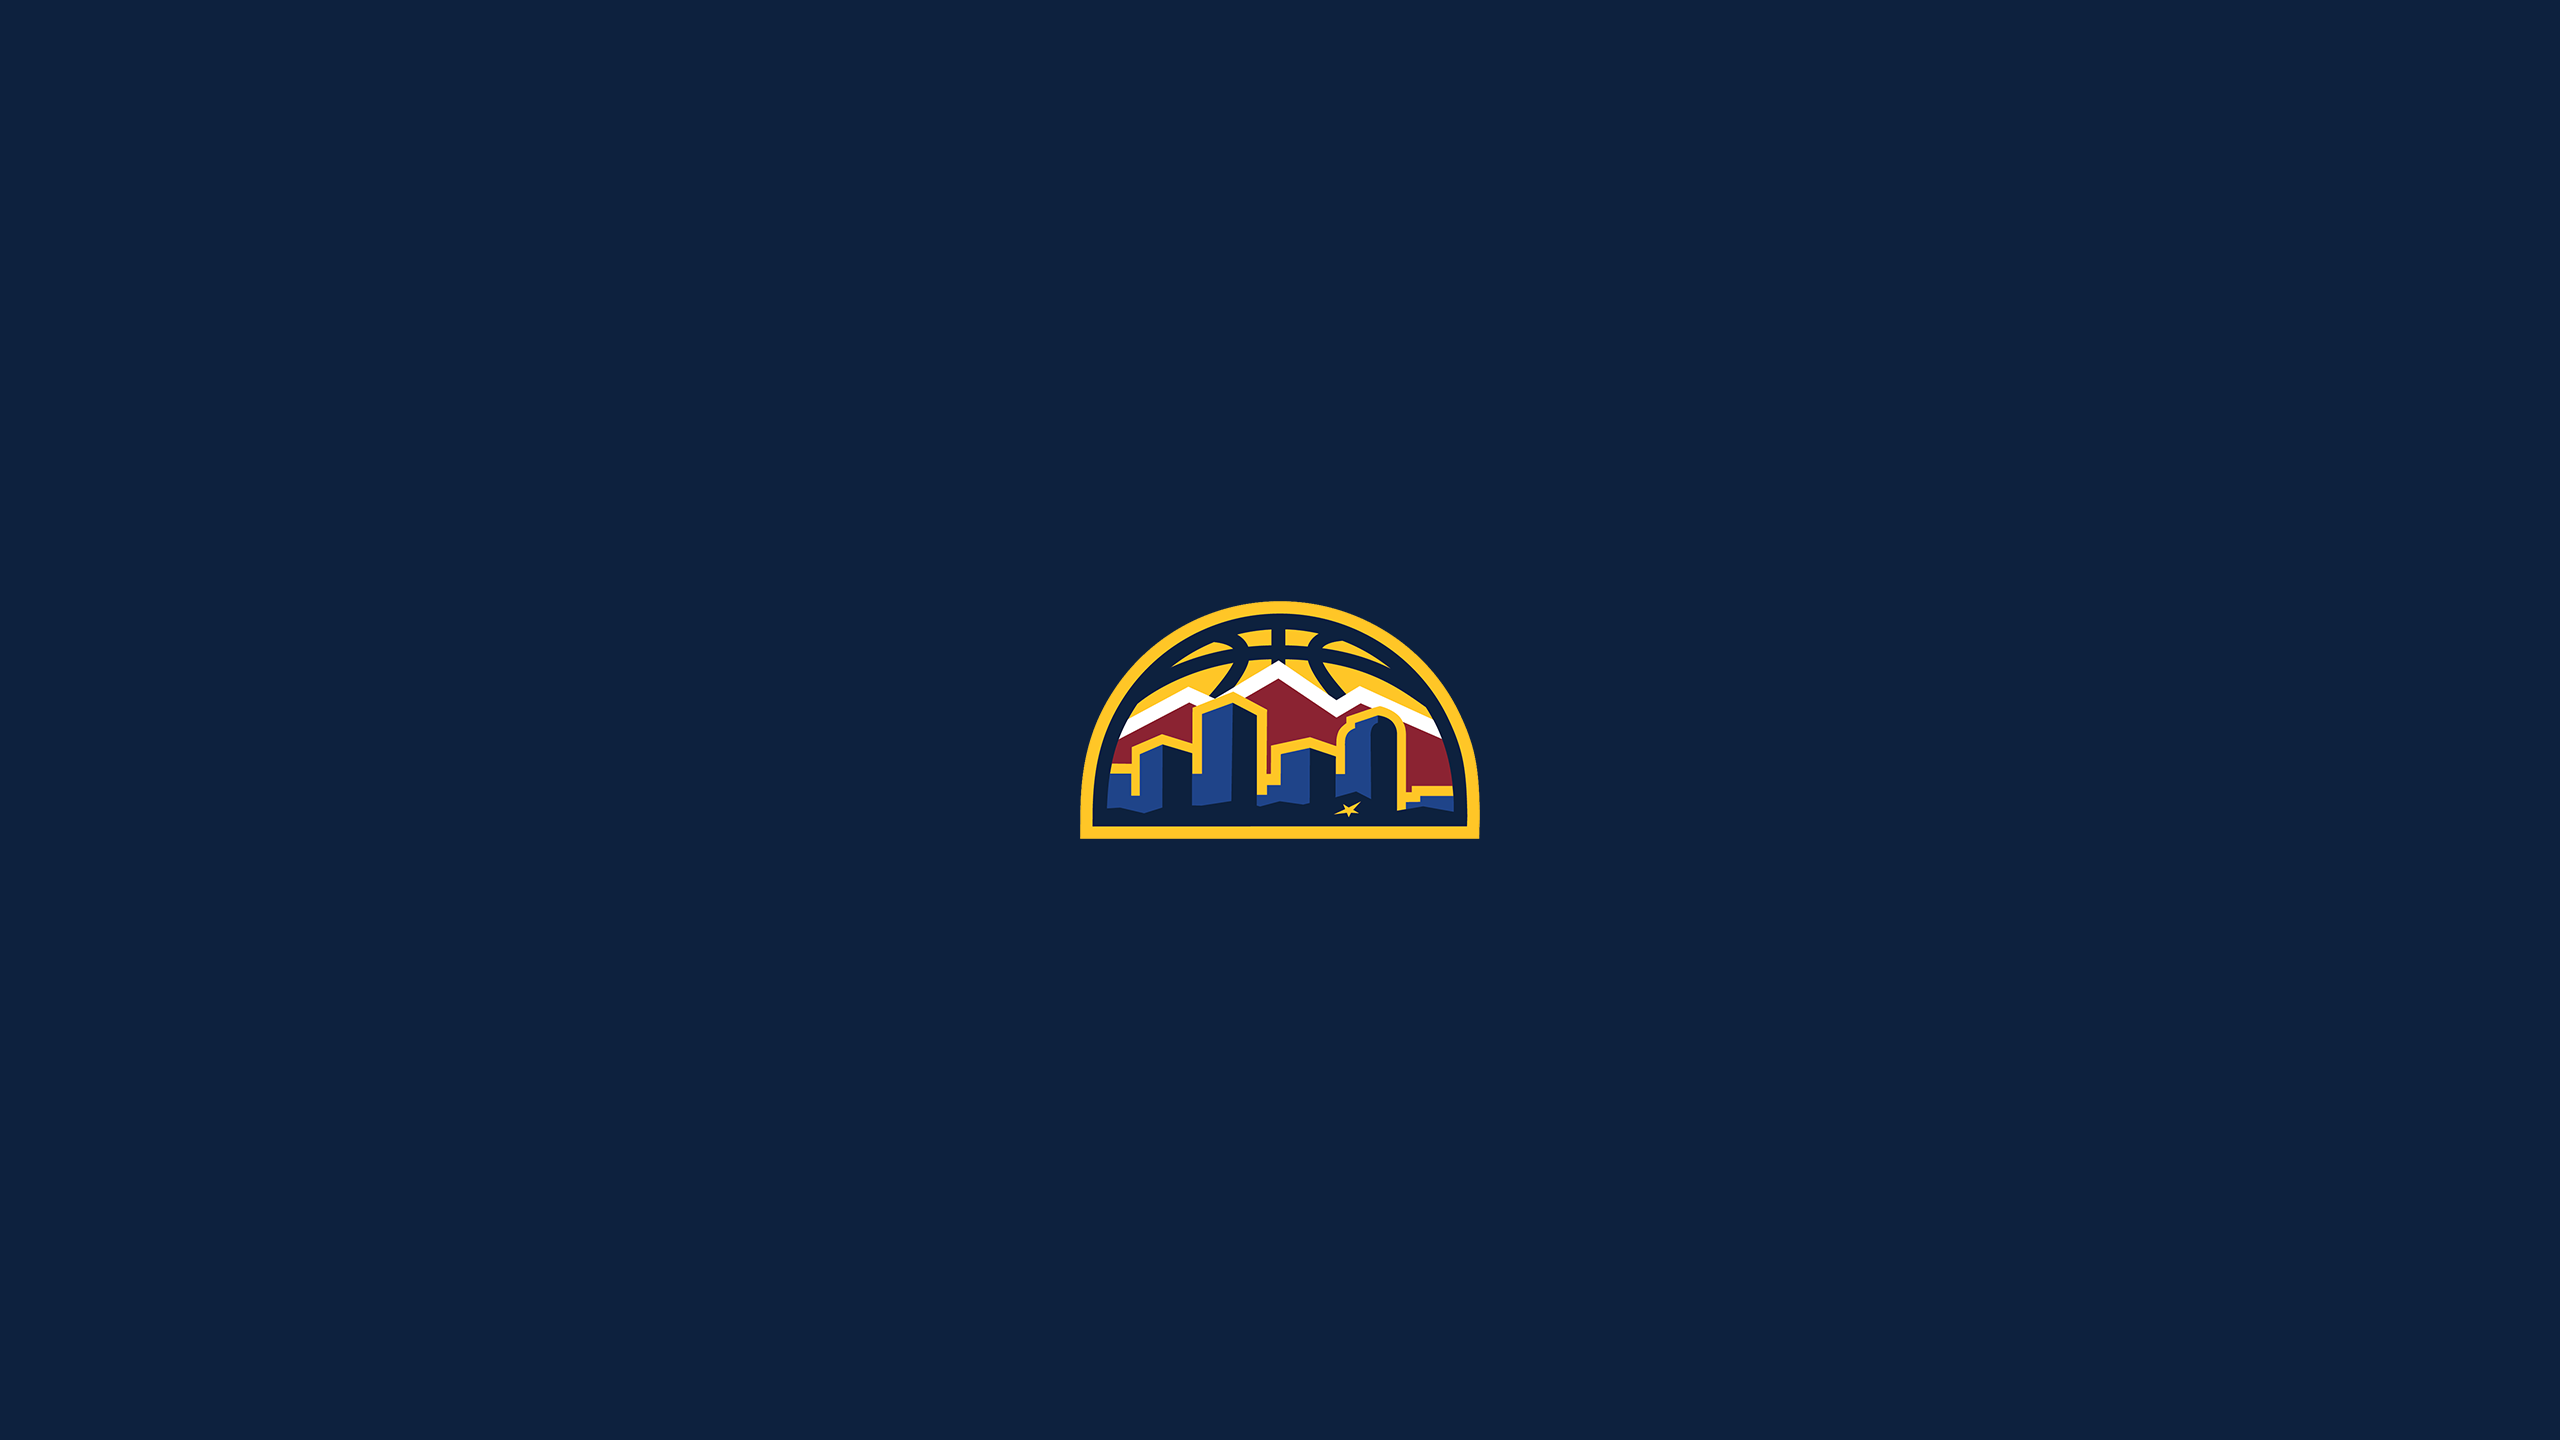 Denver Nuggets (Skyline)